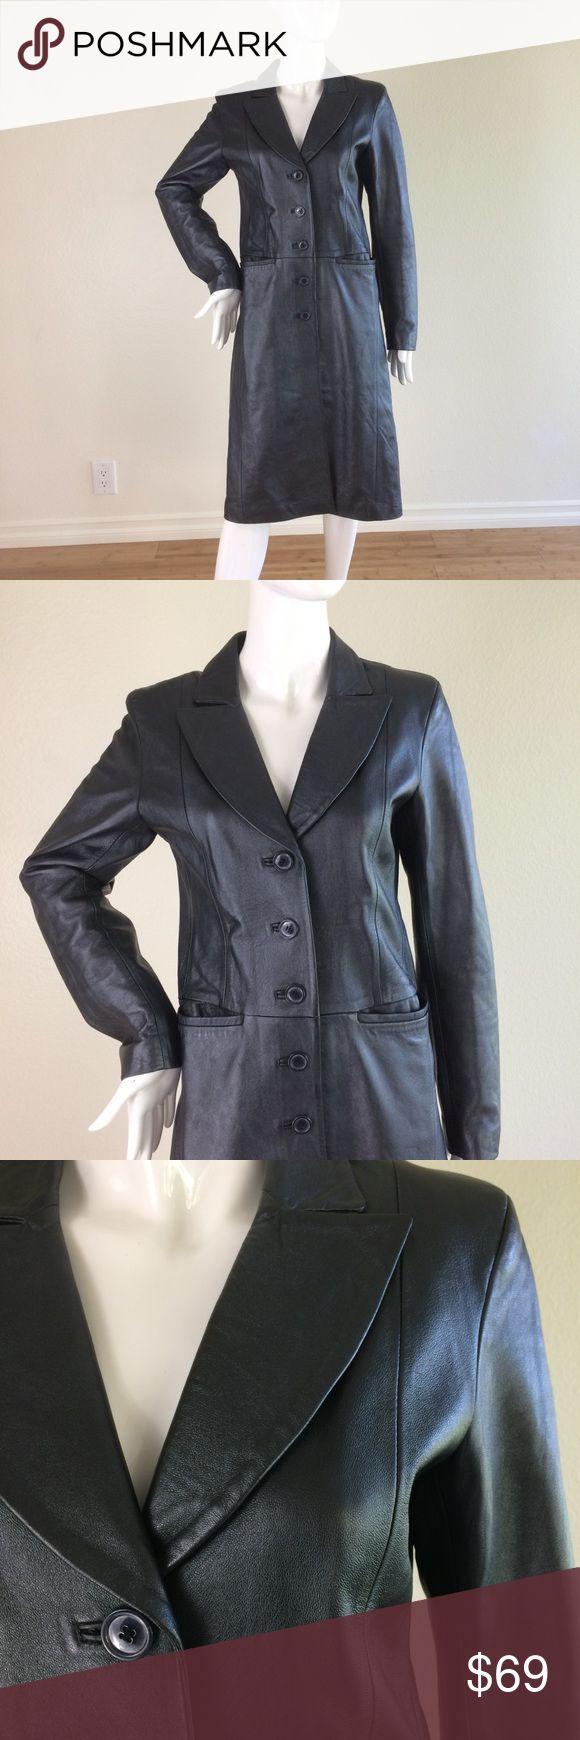 Oasis Leather trench coat - size 8 NWOT silver trench coat. Leather. Single breasted. 2 front pockets. Minor defect (slight tear on inside lining. Shown in picture. Hardly noticeable). Otherwise in absolutely fantastic condition.   Waist: 30 in. Underarm-to-underarm 36 in. Length 44 in. Oasis Jackets & Coats Trench Coats